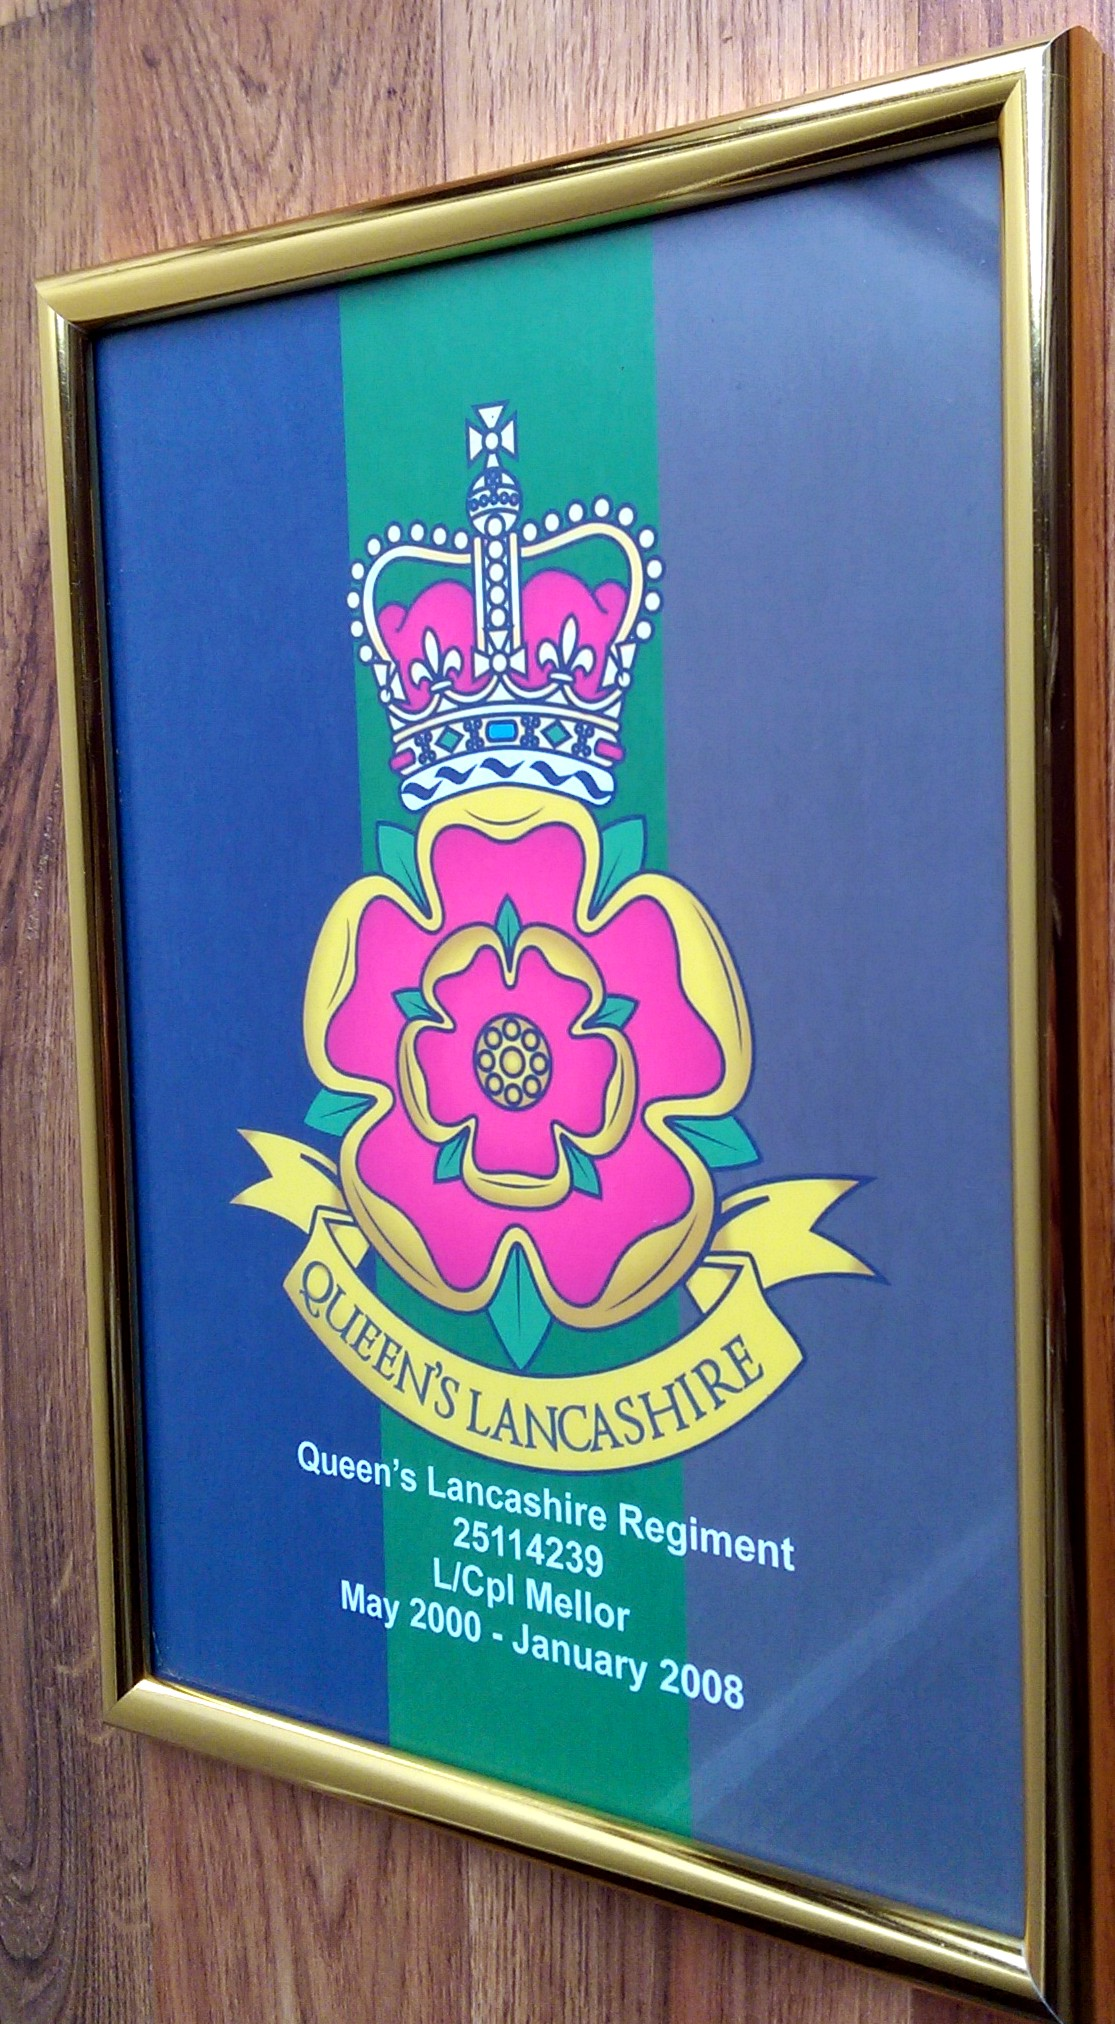 QLR Framed Logo With Regiment Number & Dates - Click Image to Close